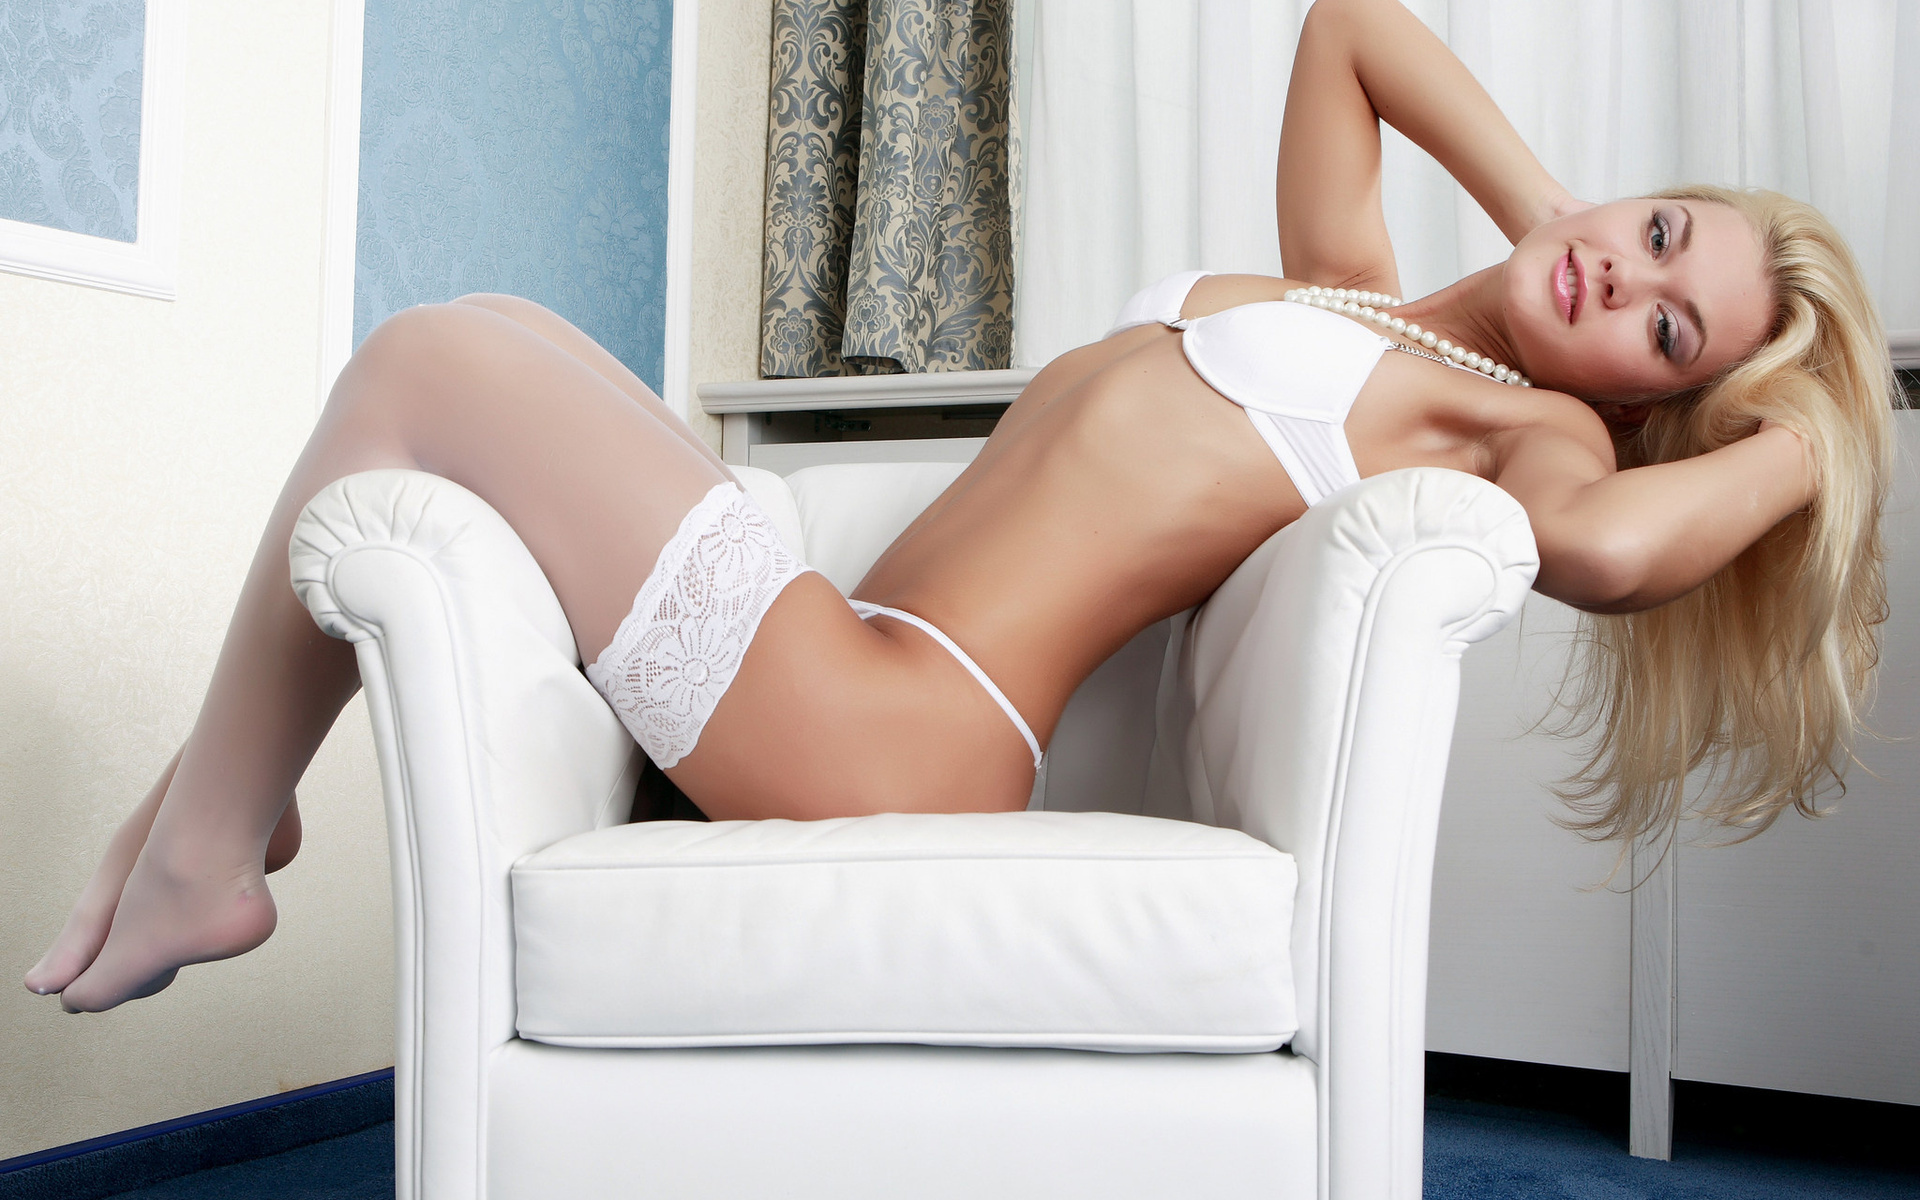 Foxy blonde sugar with neat fanny getting rid of her lacy white lingerie № 35649 загрузить